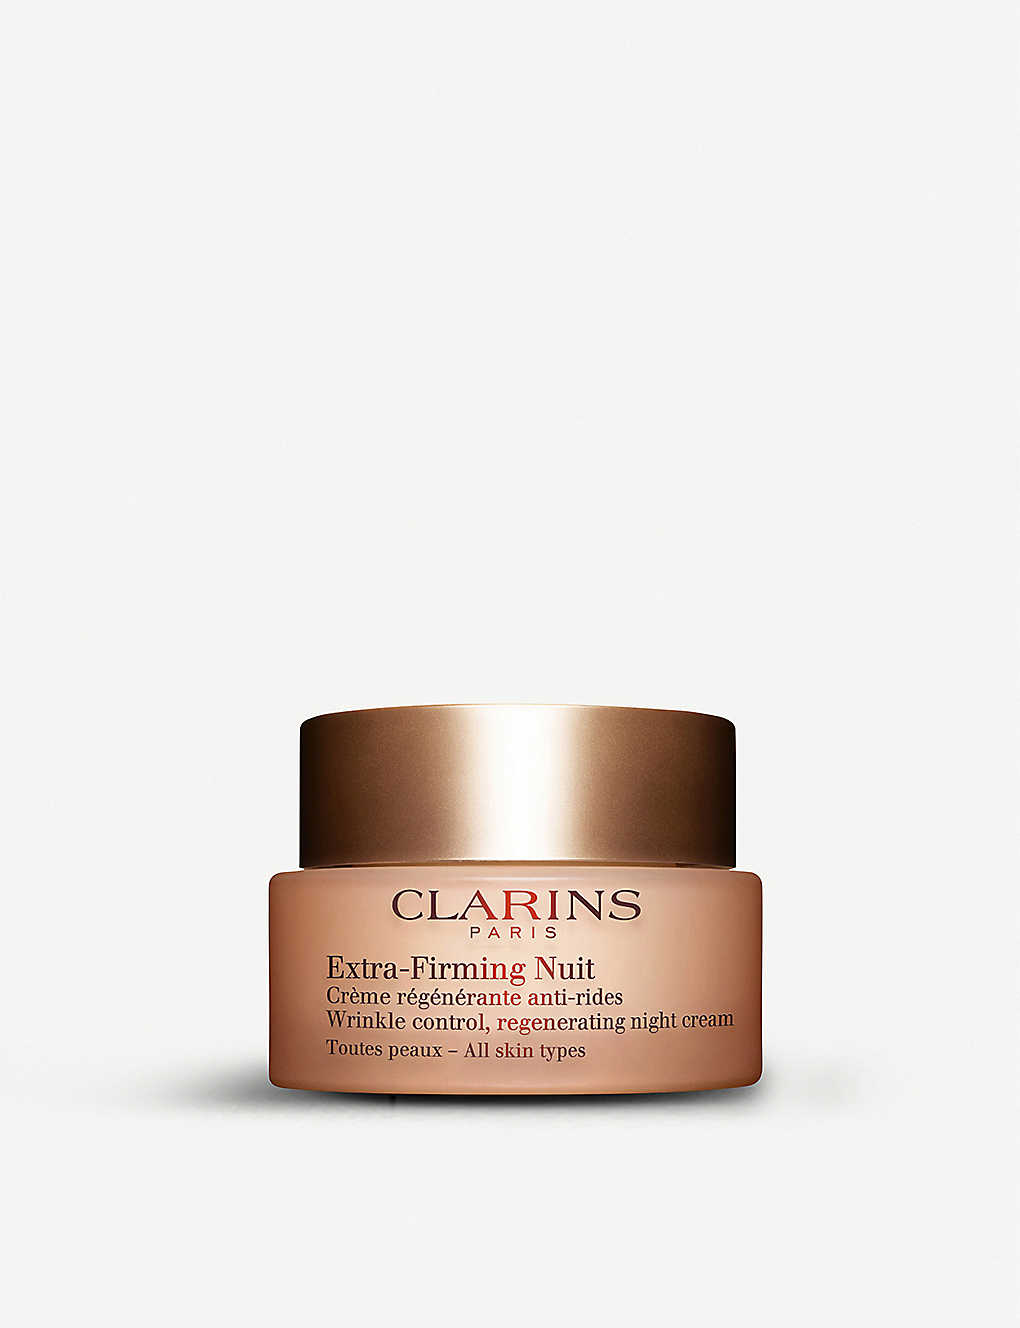 CLARINS: Extra-Firming Night Cream